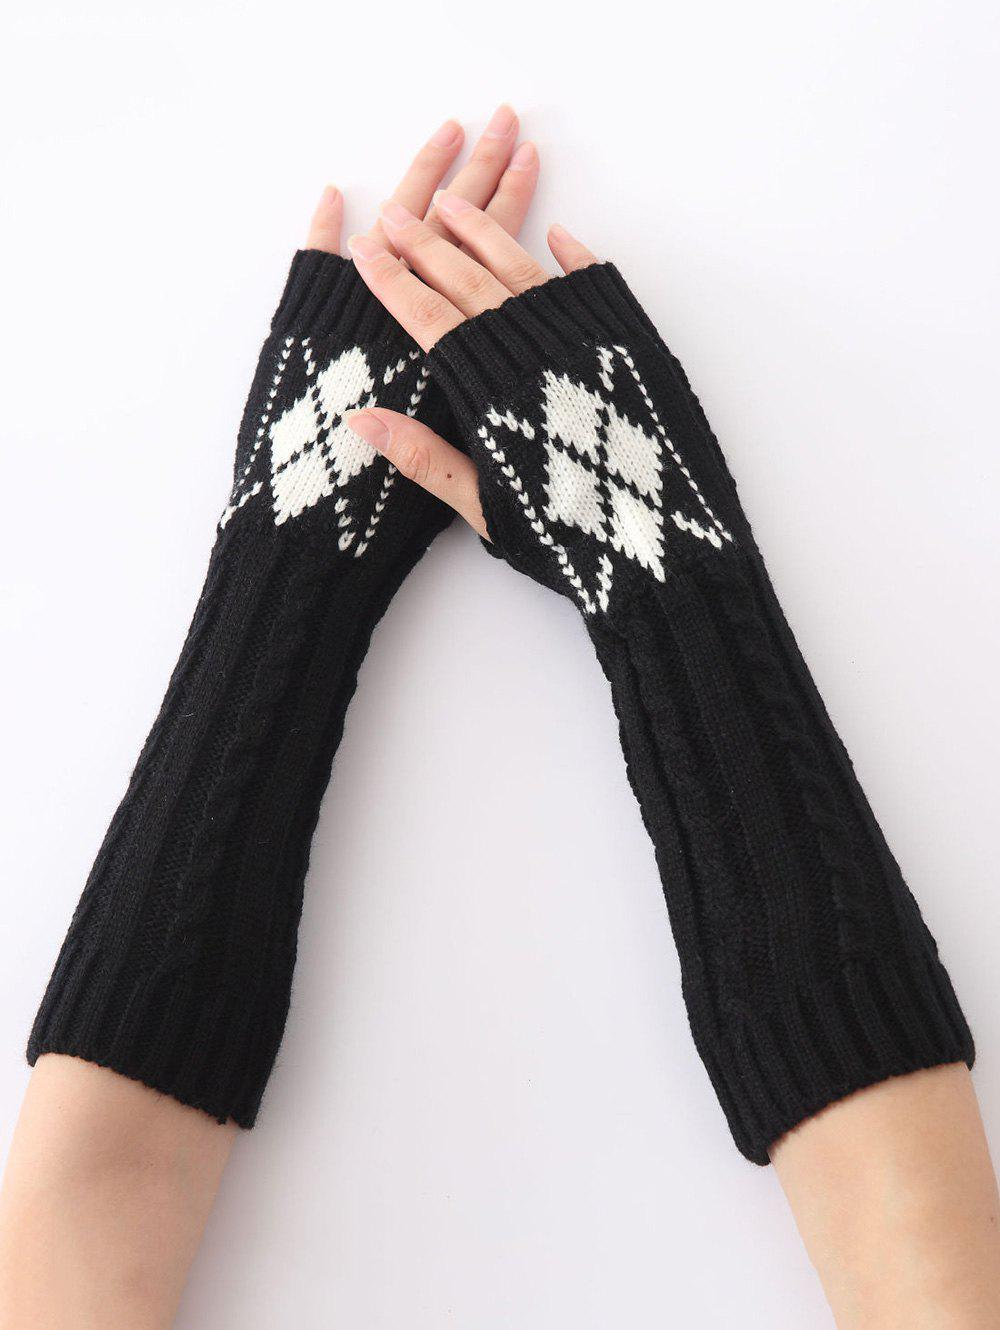 Hemp Decorative Pattern Diamond Christmas Crochet Knit Arm WarmersACCESSORIES<br><br>Color: BLACK; Group: Adult; Gender: For Women; Style: Fashion; Glove Length: Elbow; Pattern Type: Floral; Material: Acrylic; Weight: 0.073kg; Package Contents: 1 x Arm Warmers(Pair);